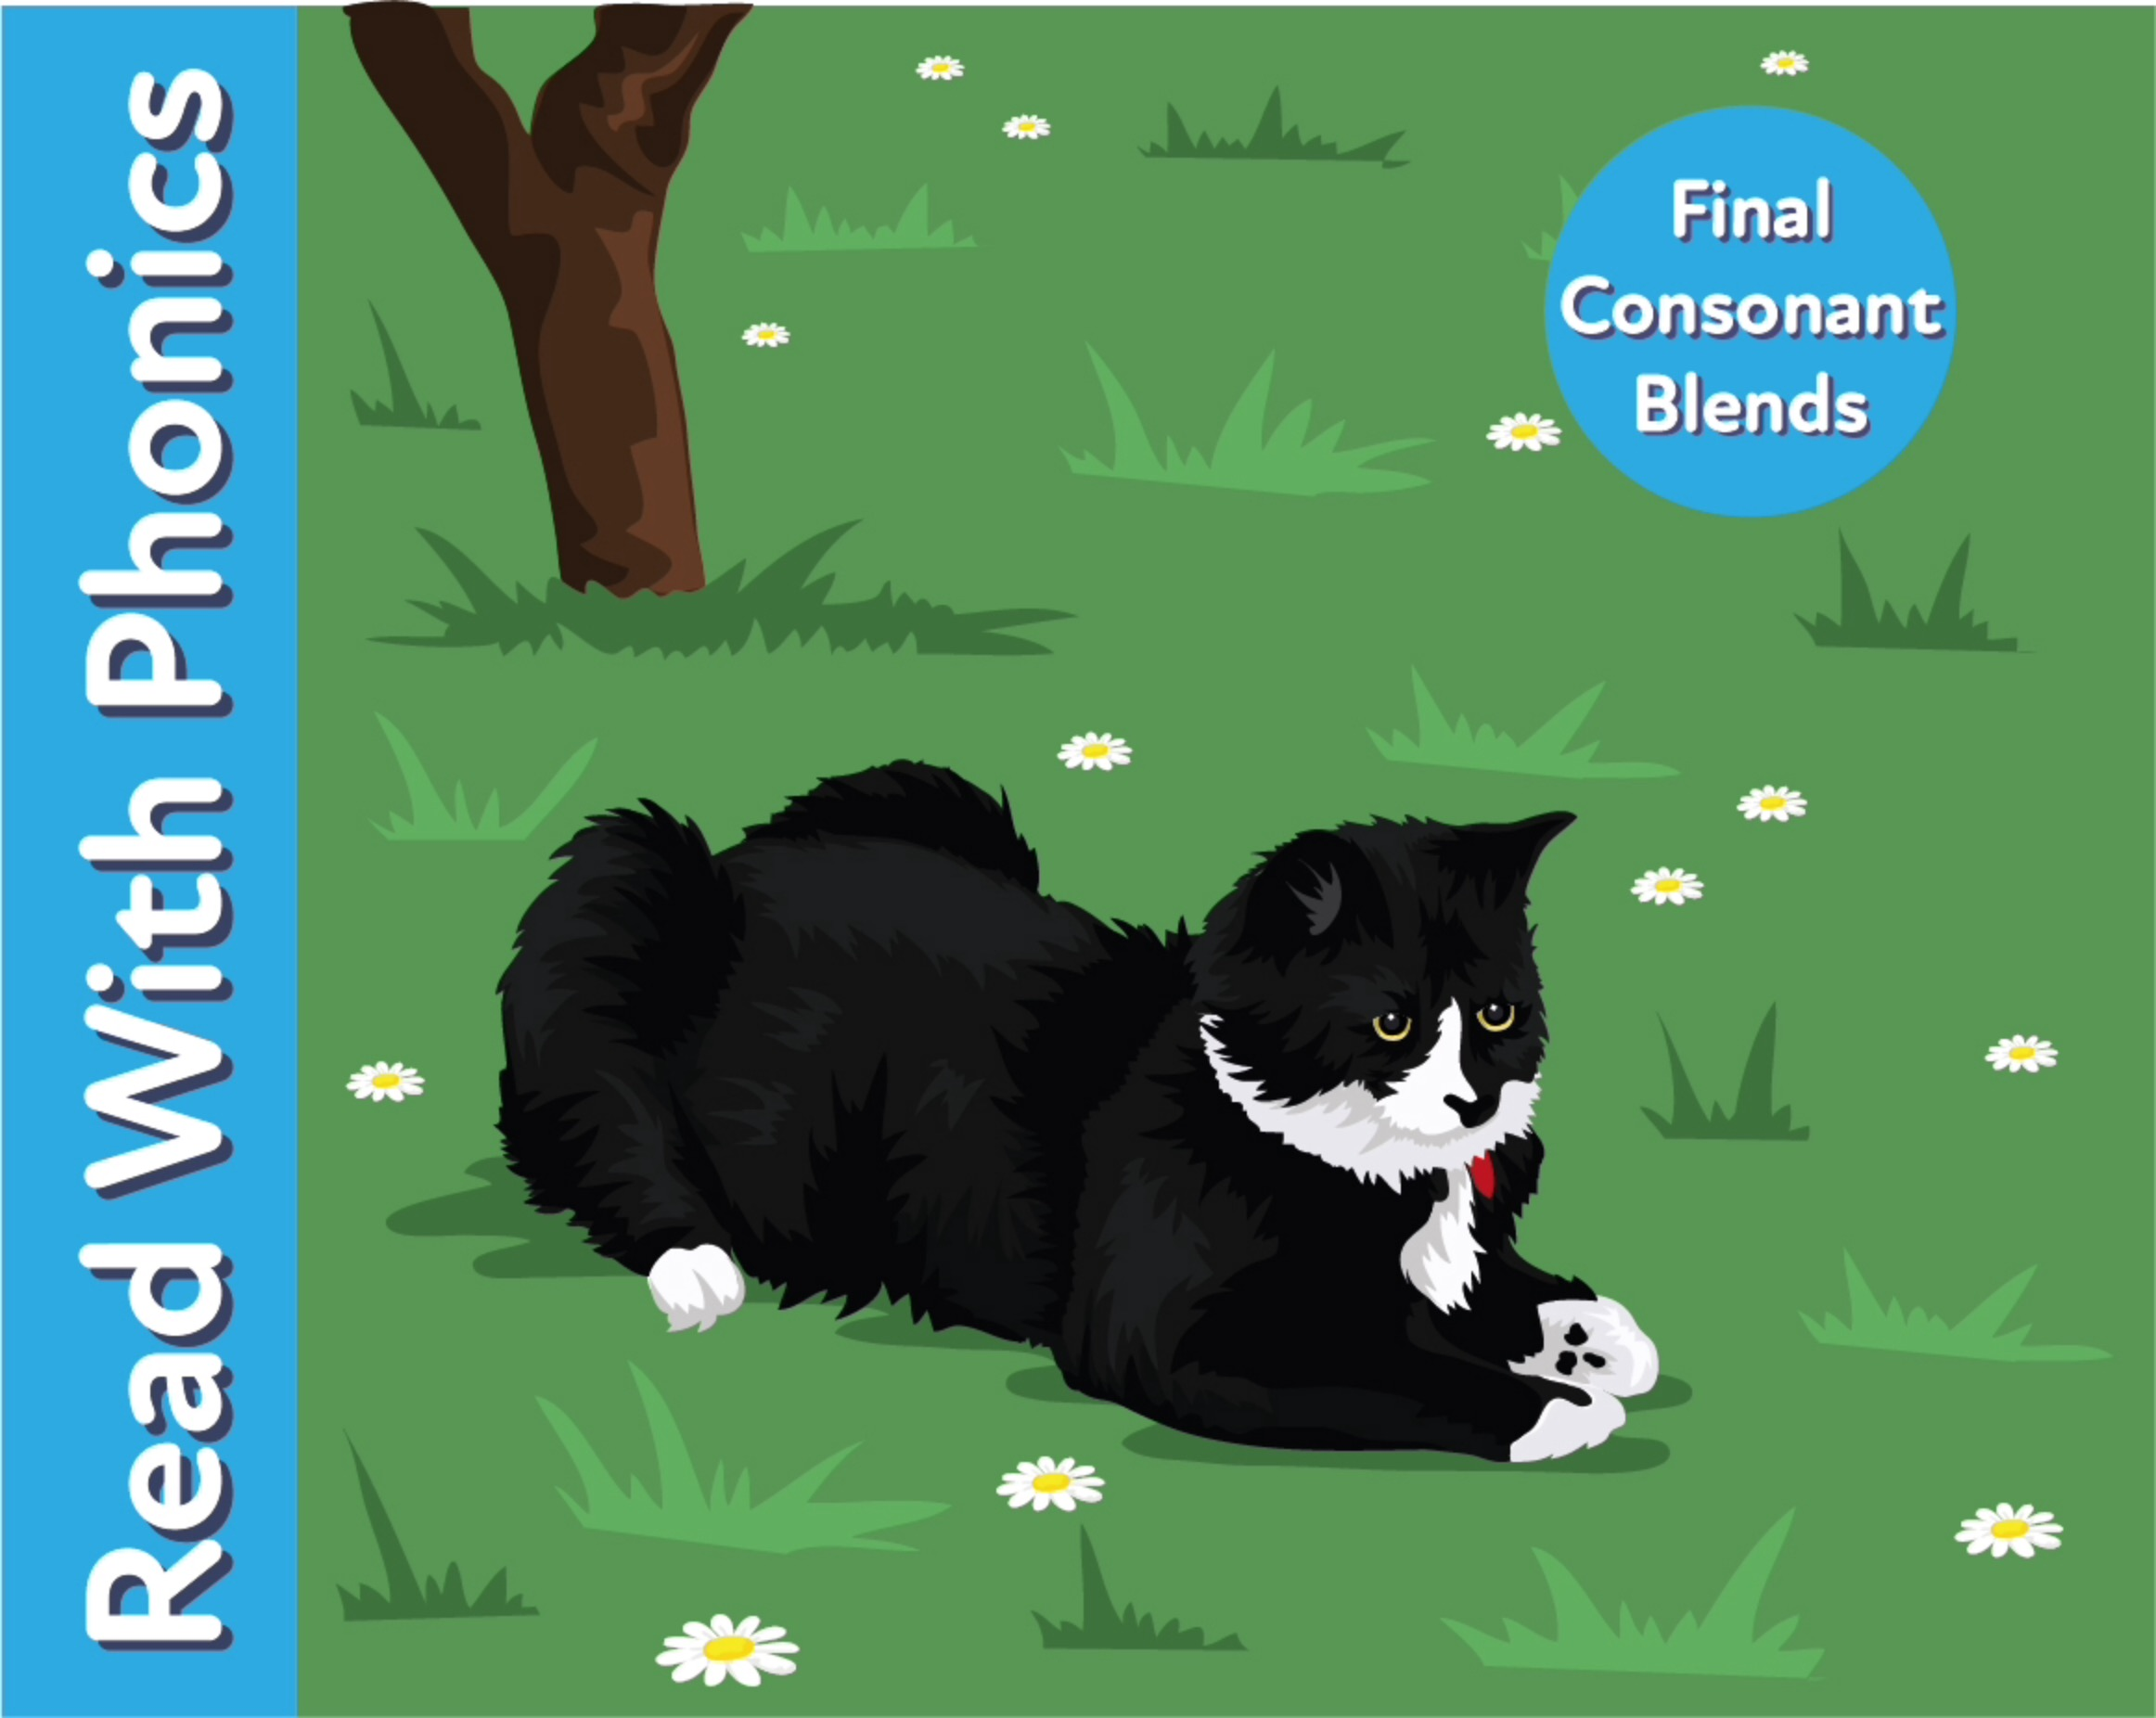 Learn Final Consonant Blends and Read the Sentences